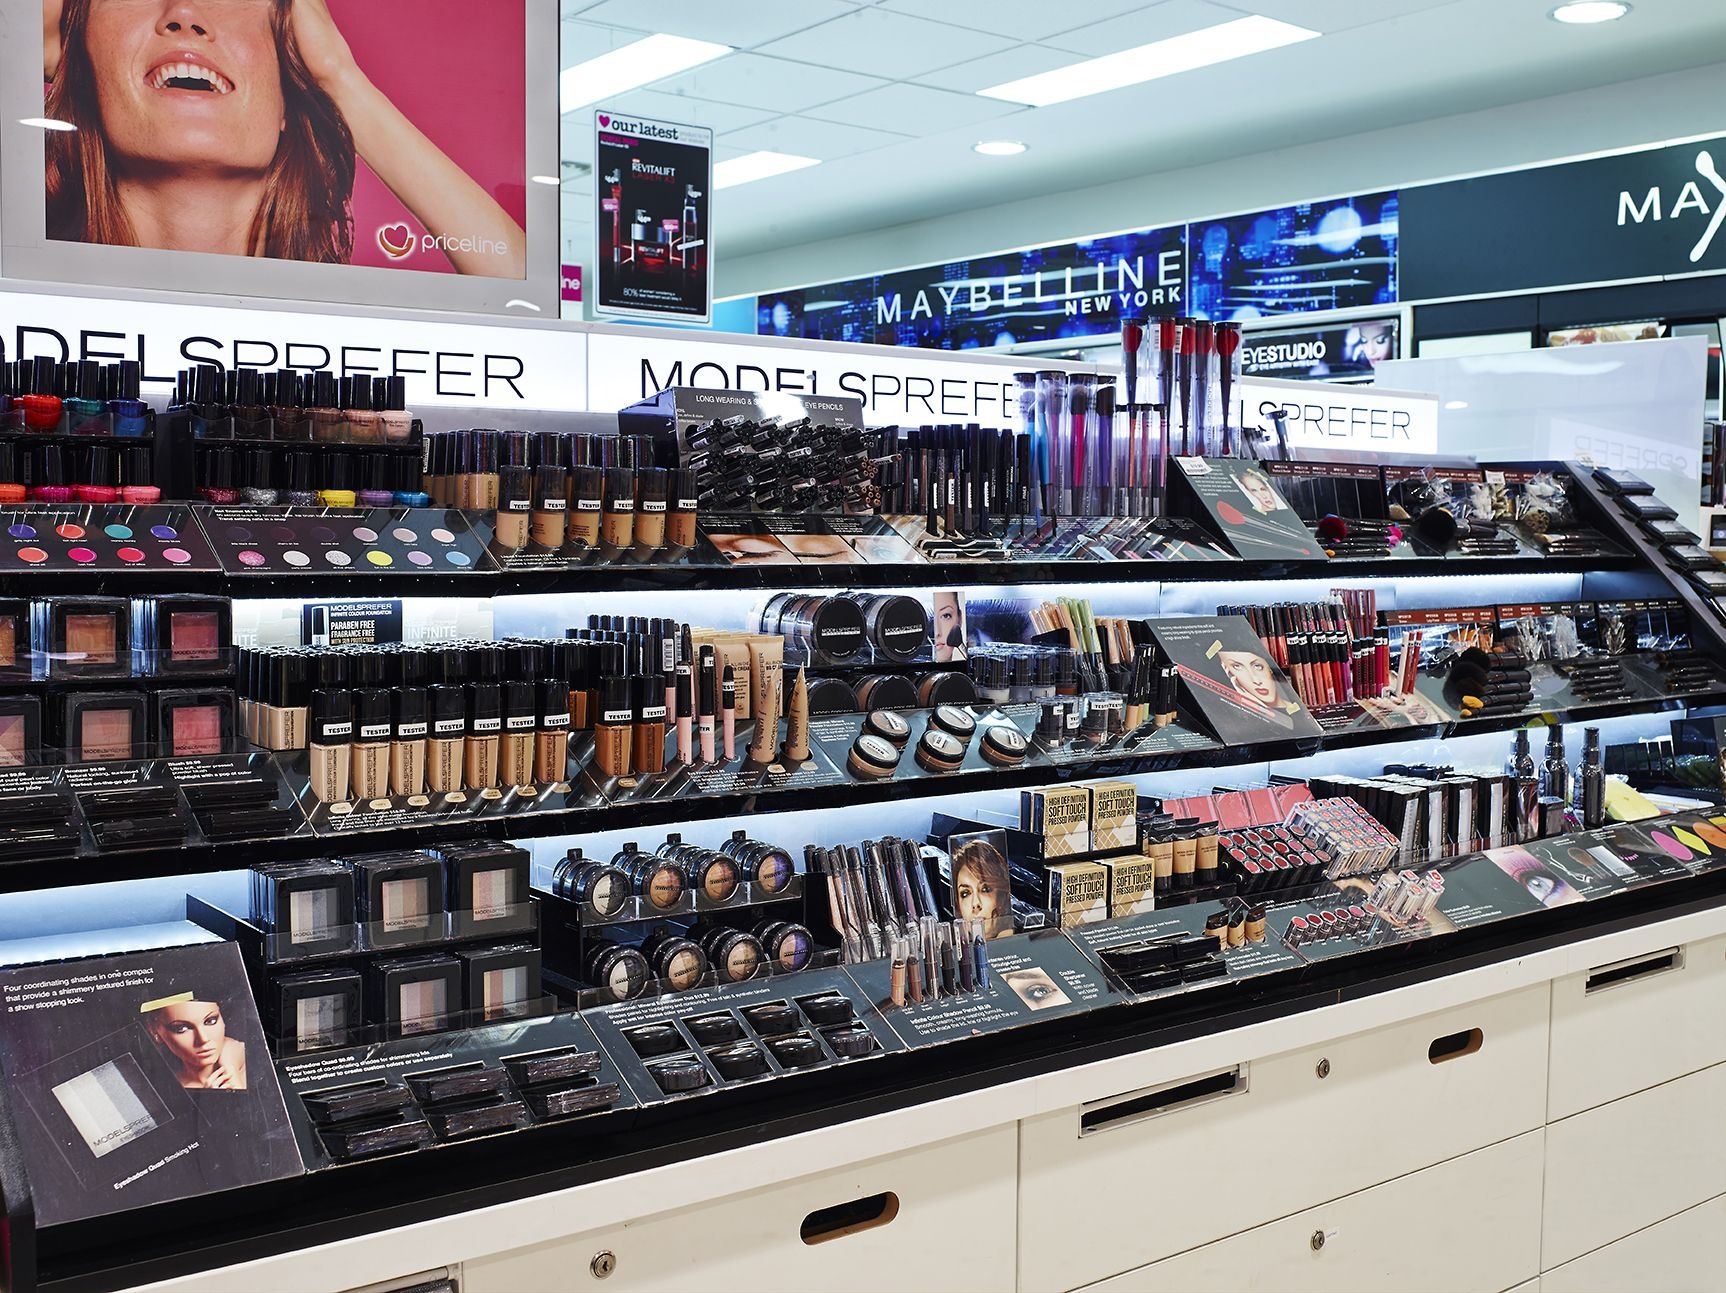 priceline cosmetic display room one Design de loja